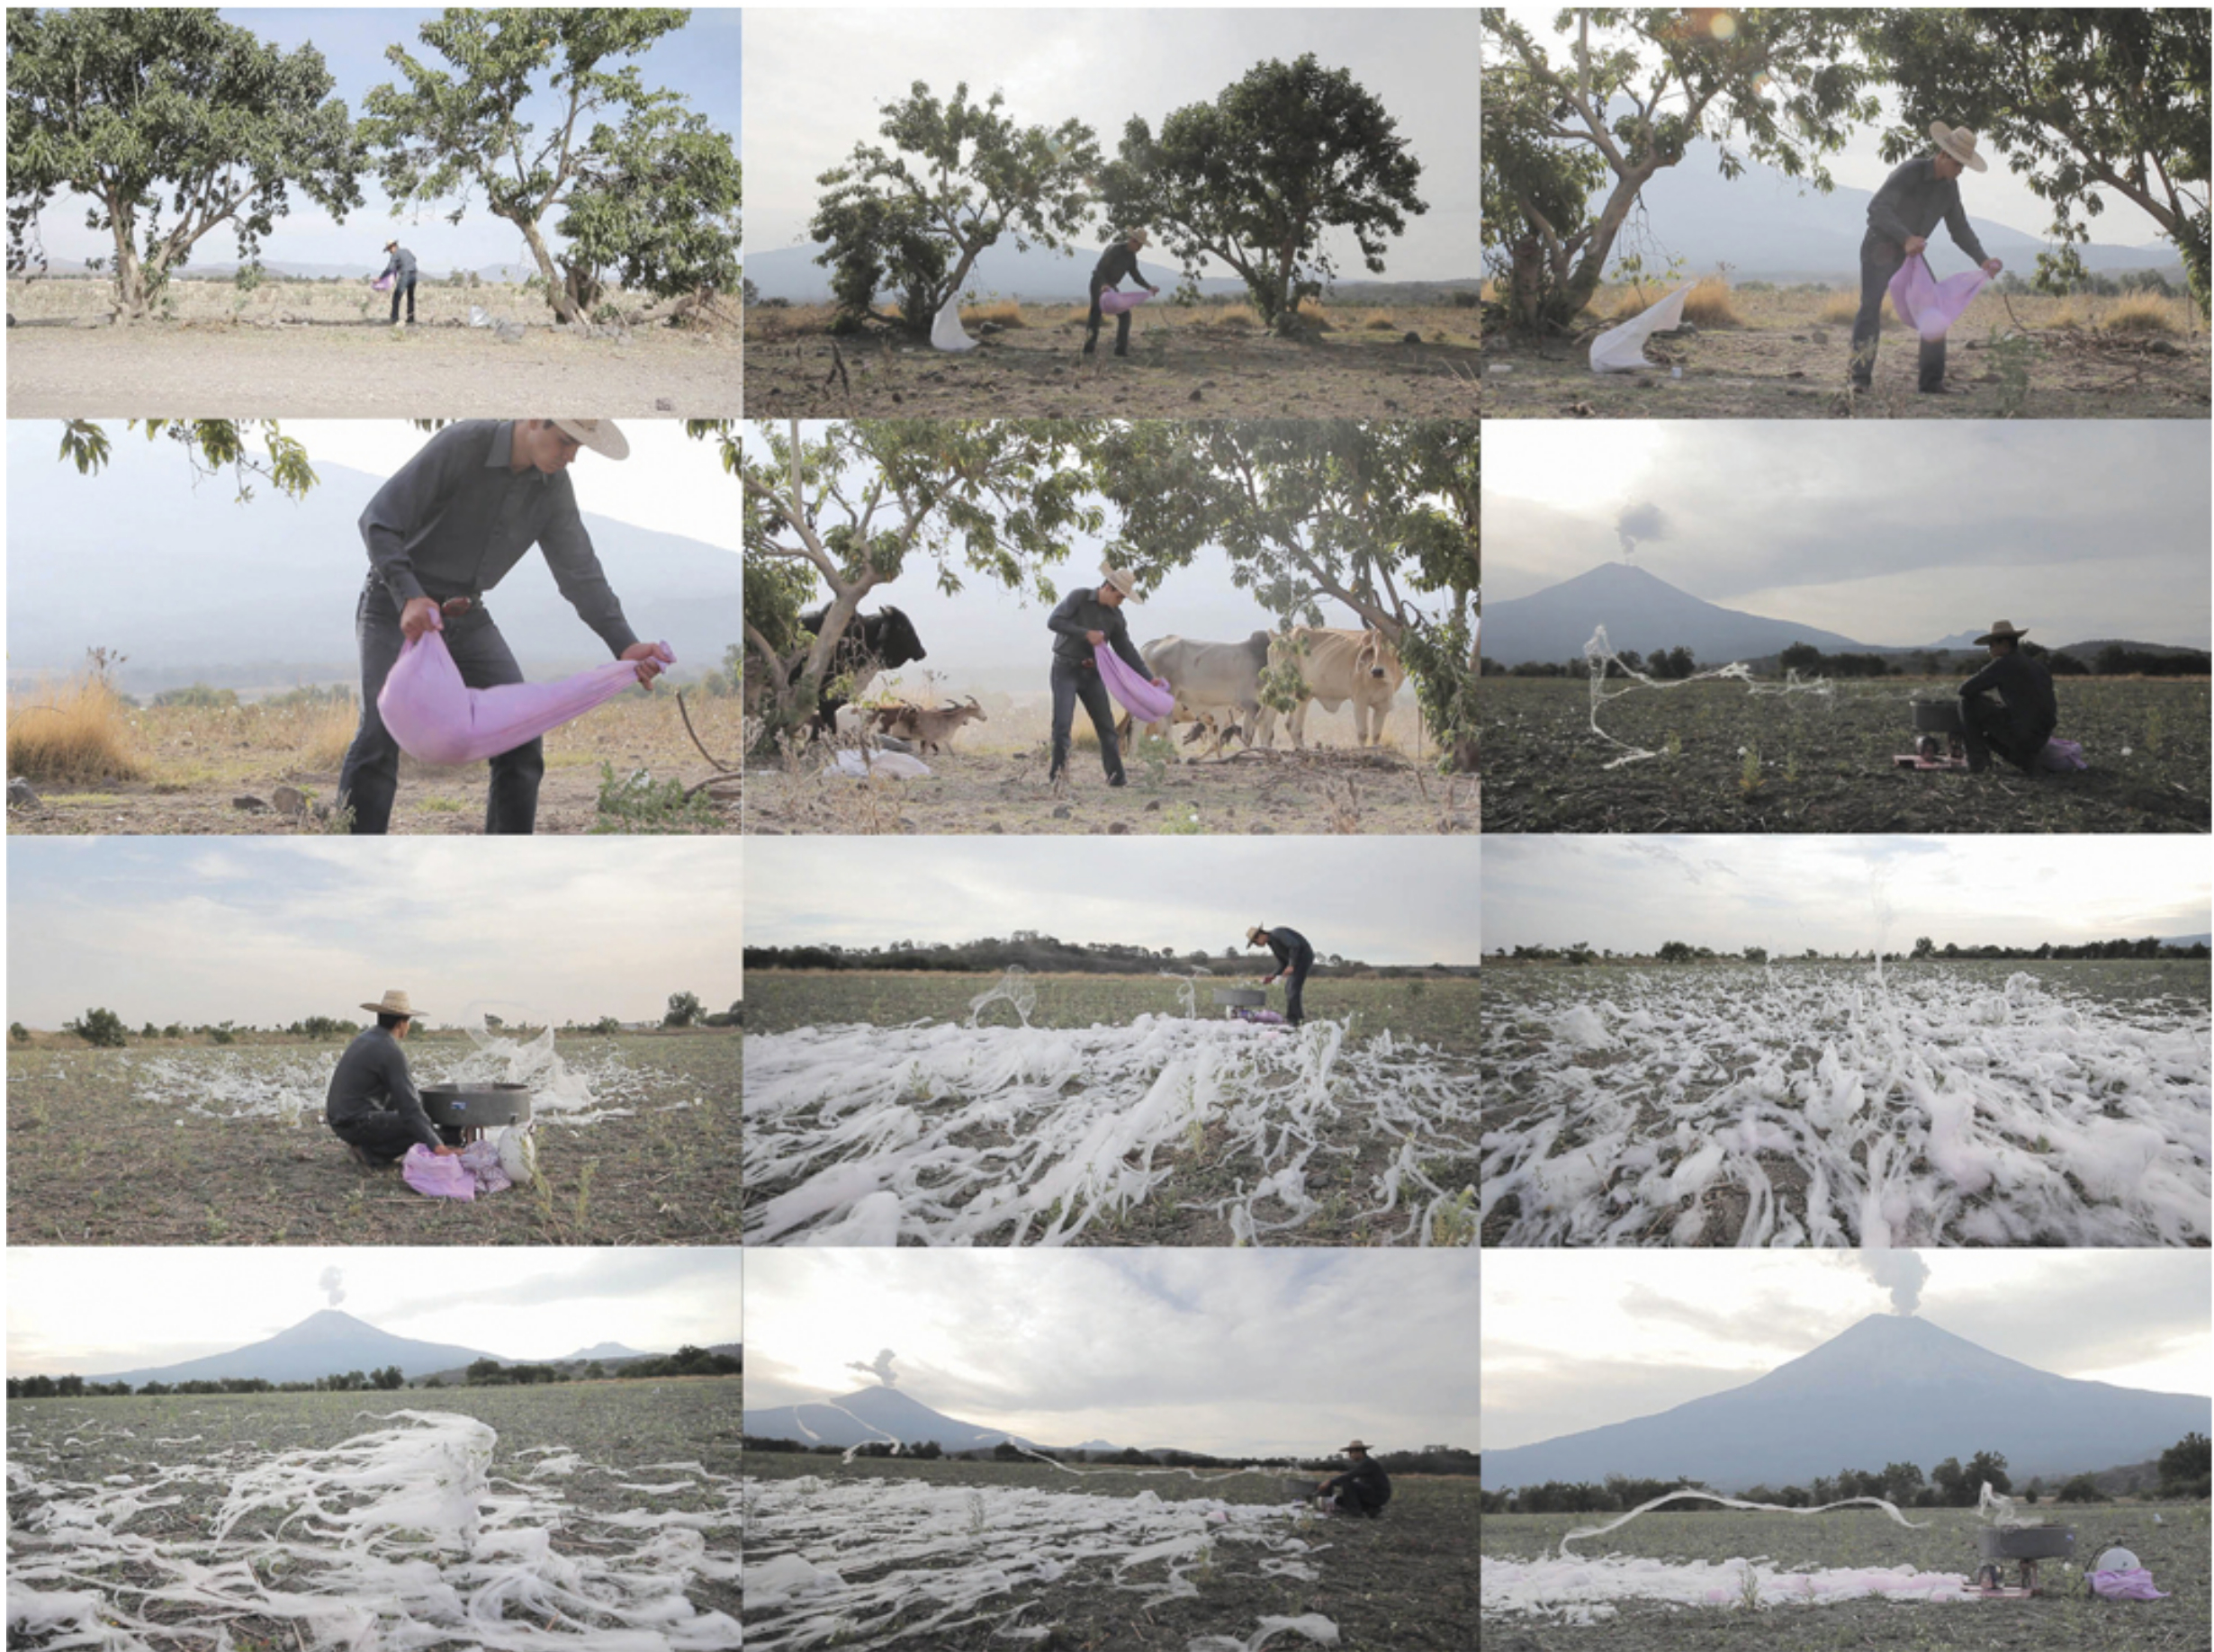 Cerniendo el azúcar (Sifting of sugar), 2012, Video